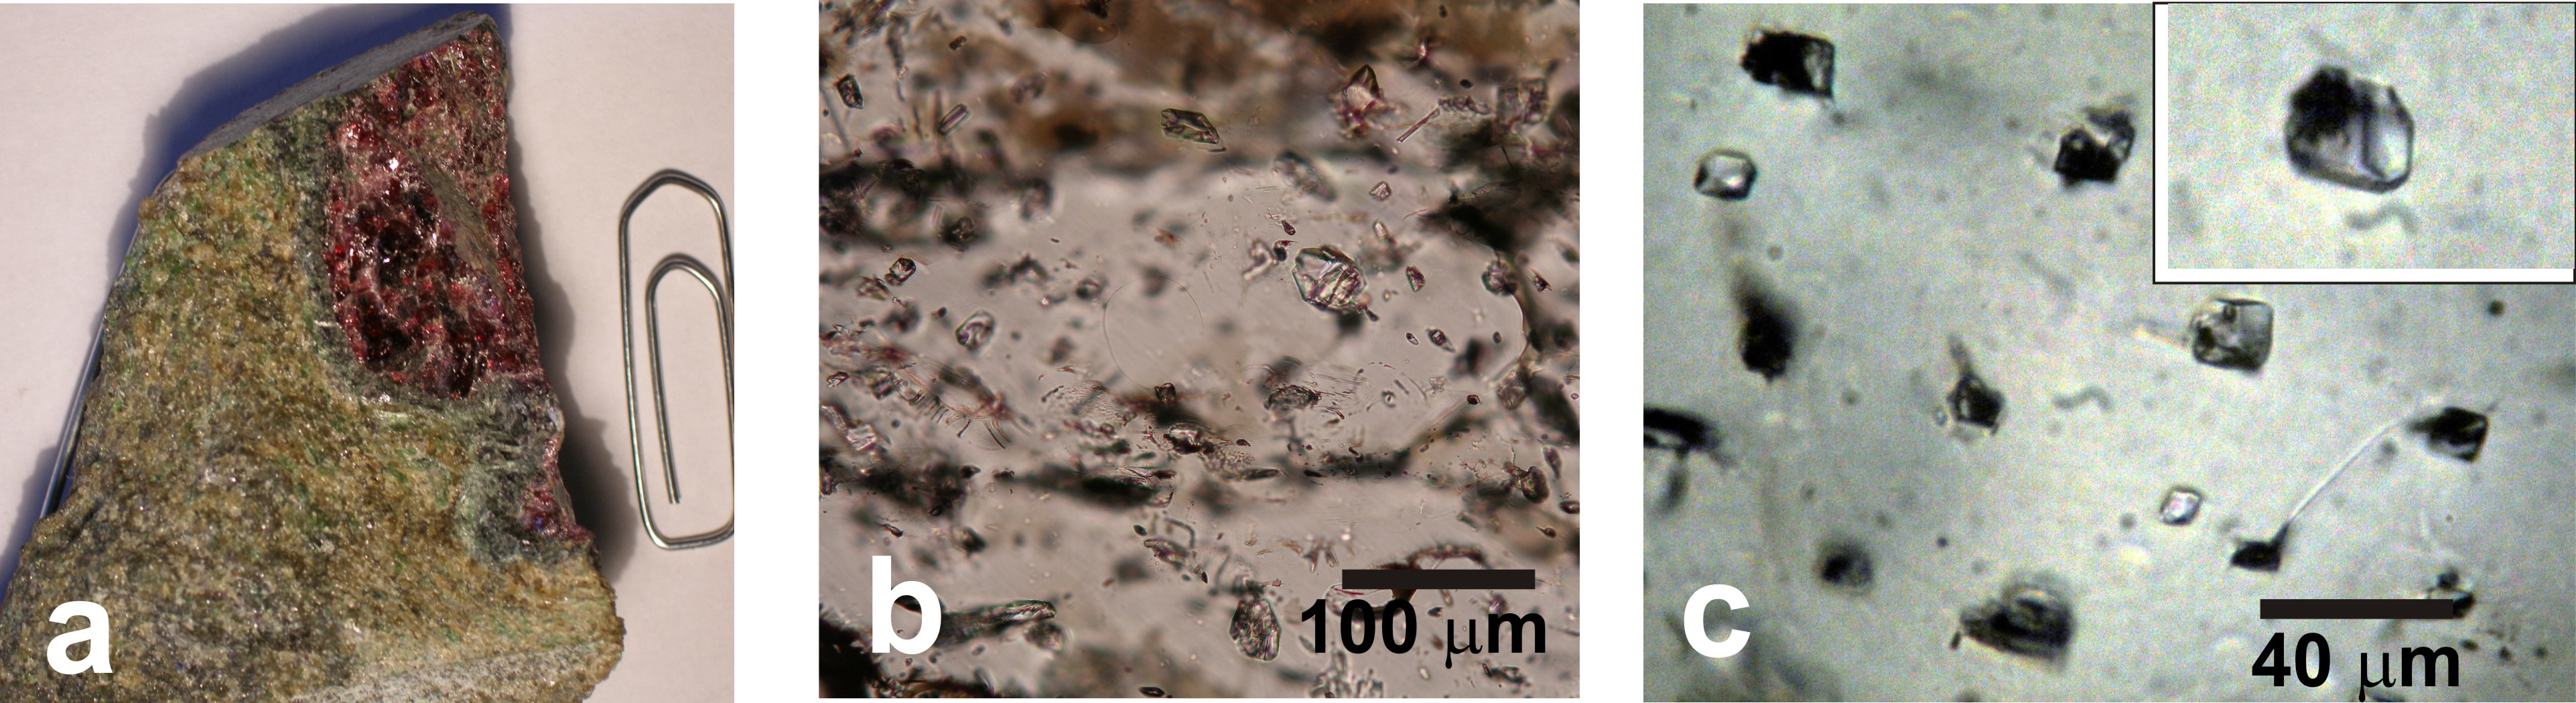 a: coarse garnet crystal in garnet peridotite from Cima di Gagnone plate interface mélange. This peridotite derives from dehydration of former serpentnite and this garnet represents a high-pressure (3 GPa) conduit for fluid flow in this rock. B: photomicrograph showing a view of the corse garnet hostin plenty of polyphase inclusions representing the fluid circulating in the garnet peridotite and released by the dehydration event at 3 GPa. C: close view of the solid polyphase inclusions.